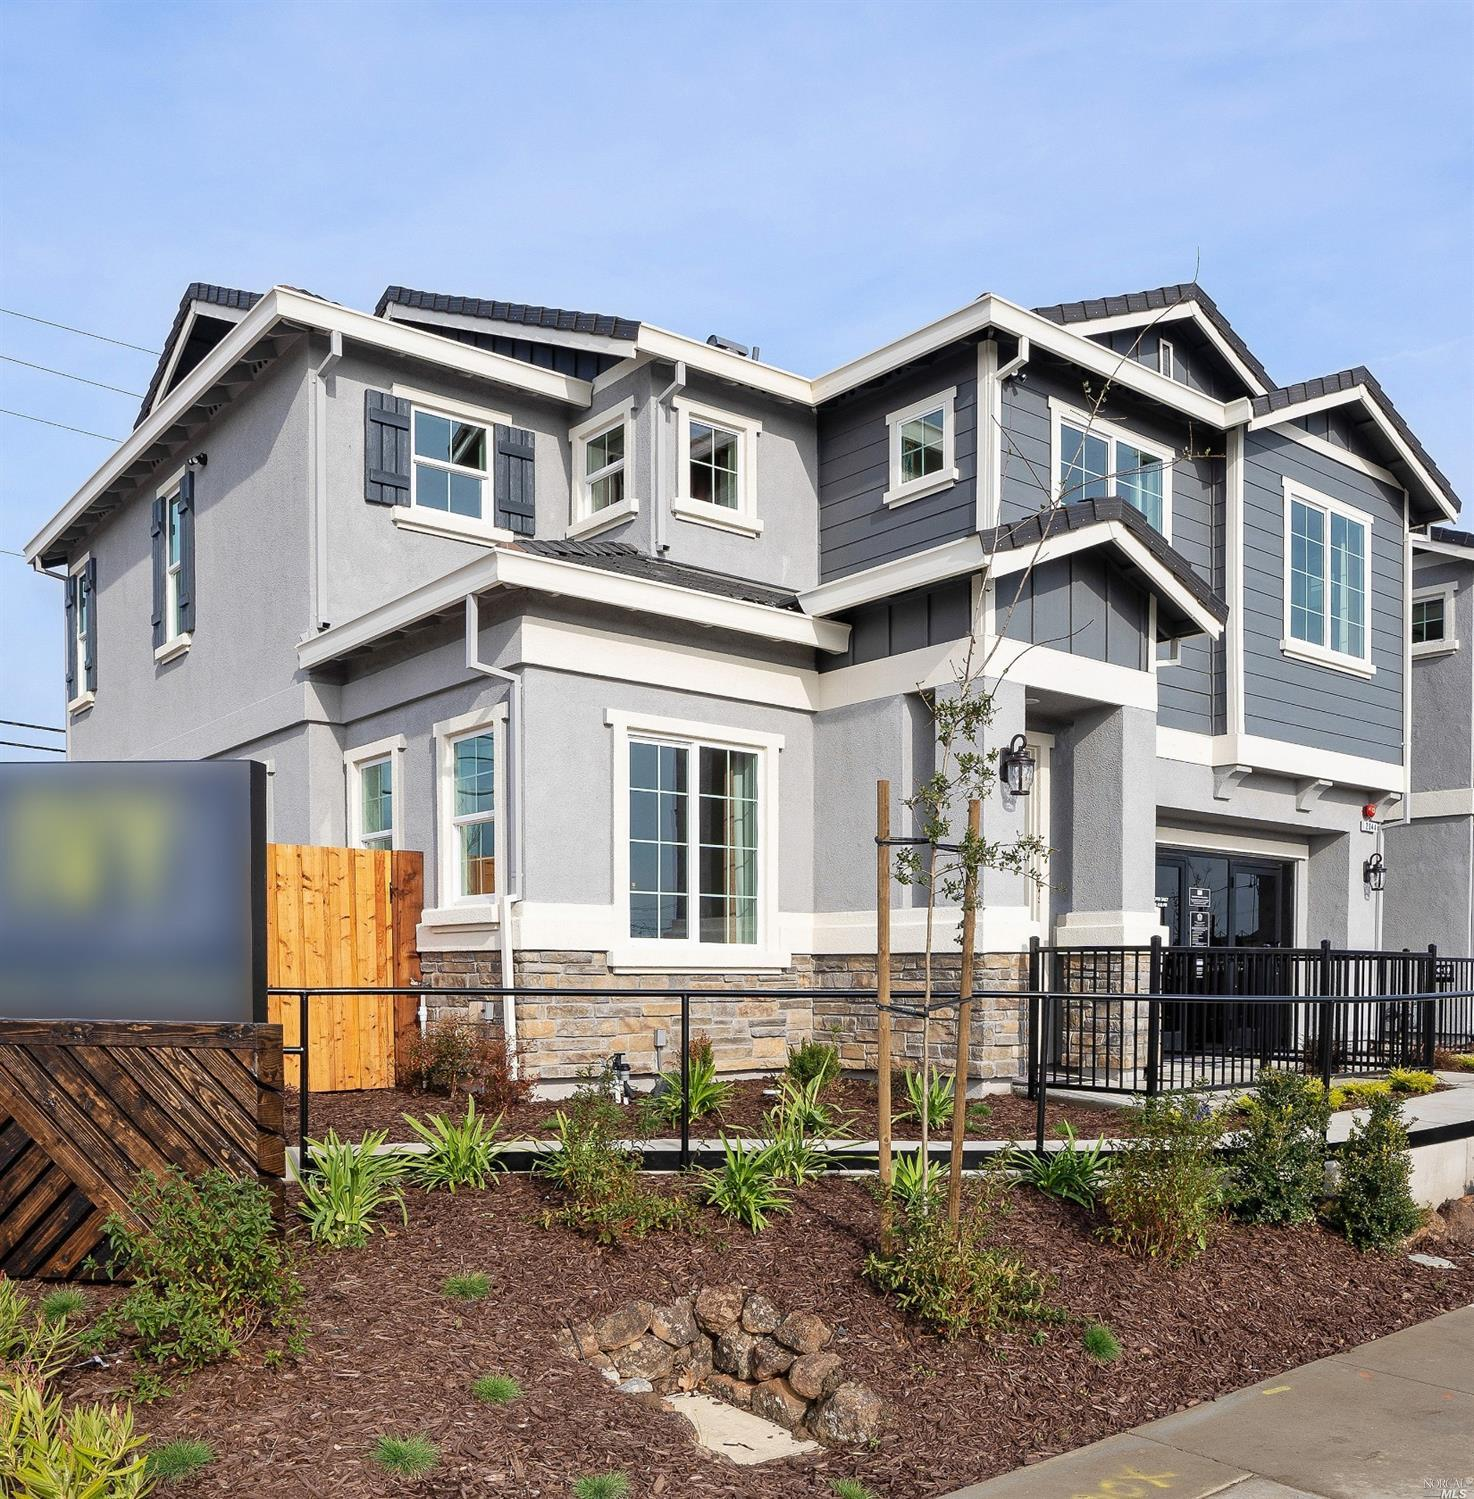 Ivy Crossing is a brand new collection of 111 single family homes, situated in the outskirts of Fair